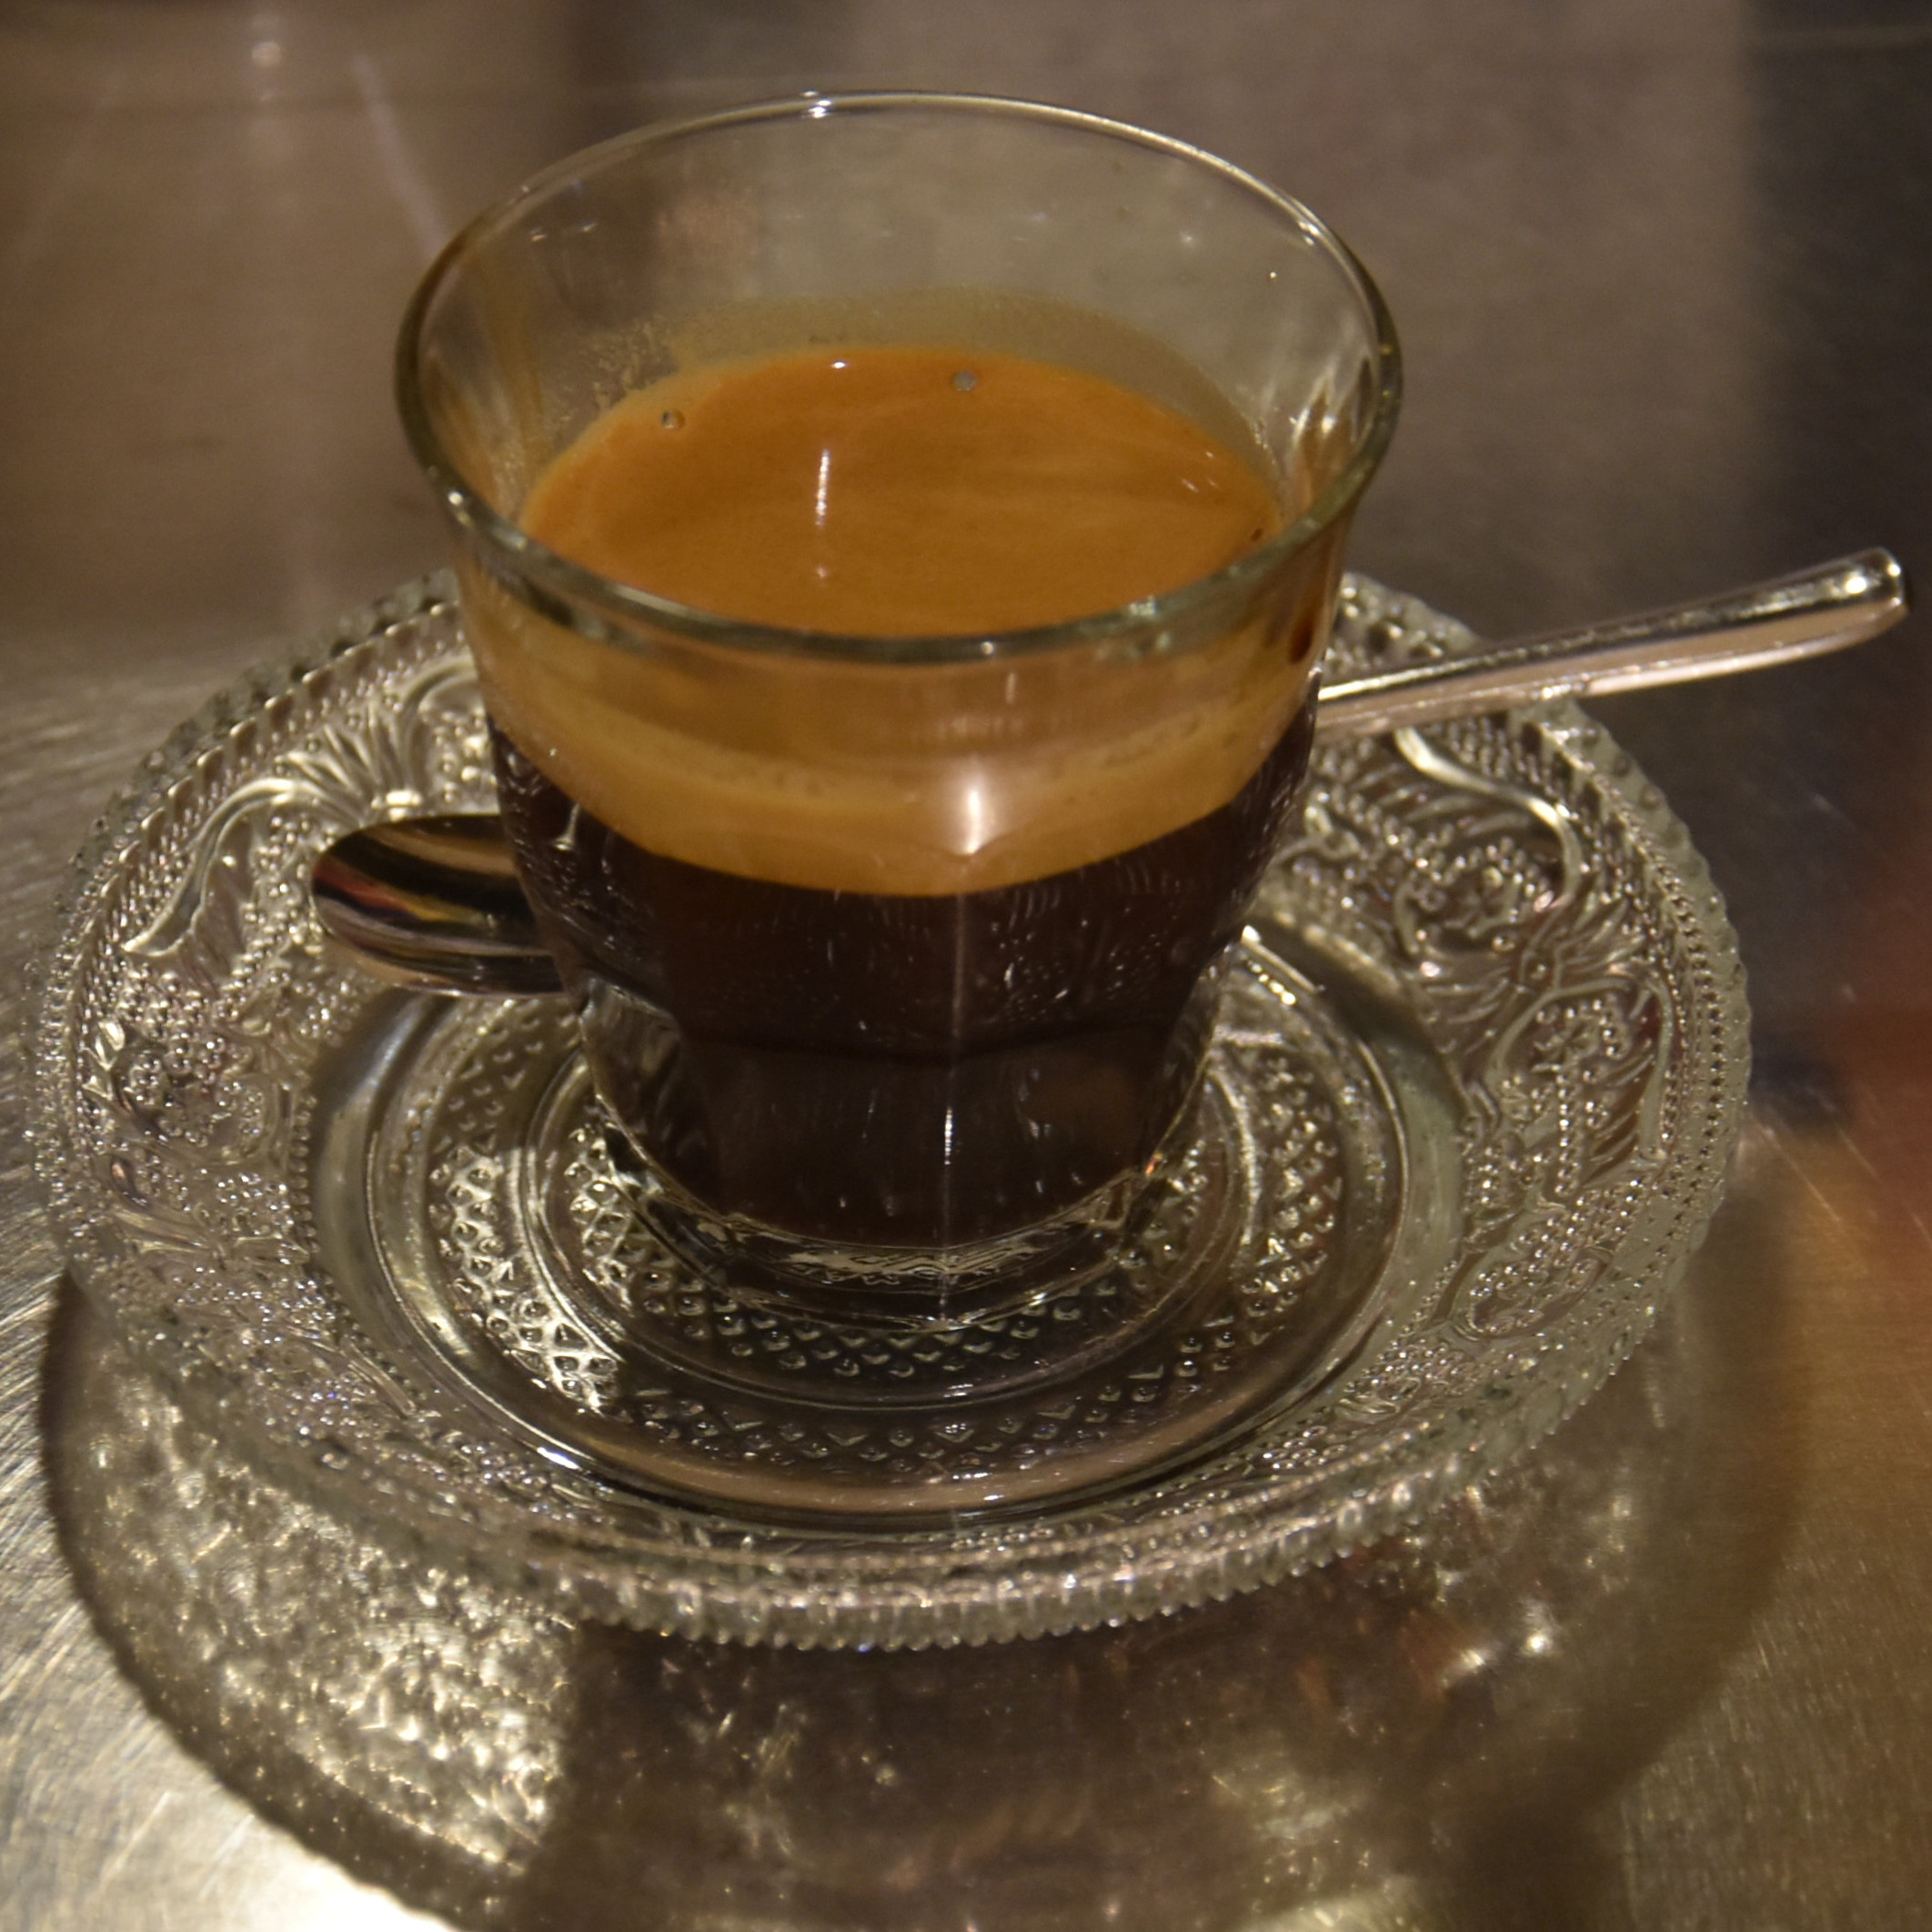 A lovely espresso, made with the house-blend at Blue Monday in Kanazawa and served in a glass, on a patterned glass saucer.